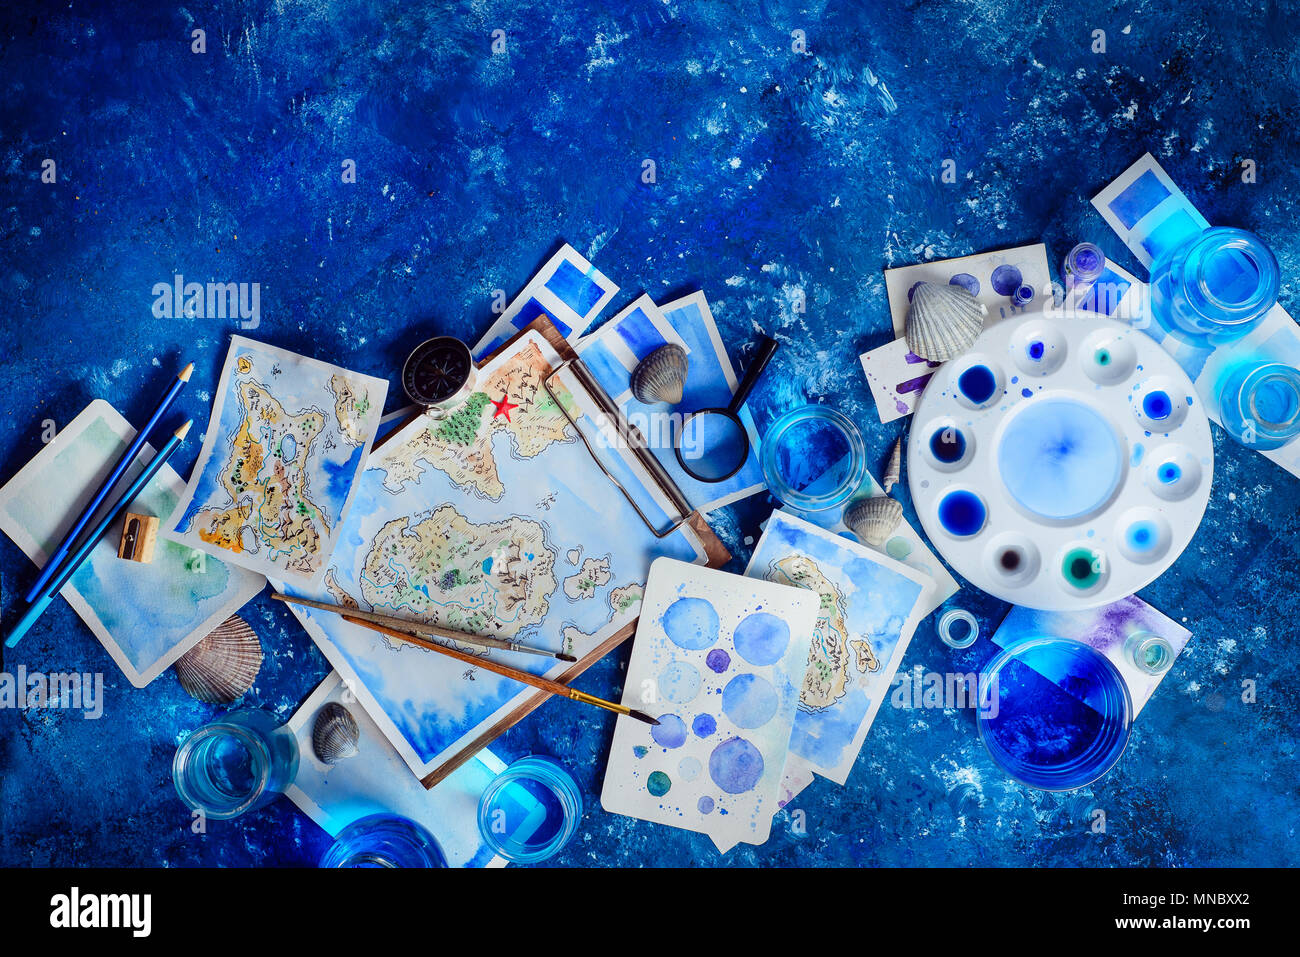 Artist workplace with a watercolor map, sketches, seashells and compass on a navy blue background with copy space. Travel flat lay header. - Stock Image